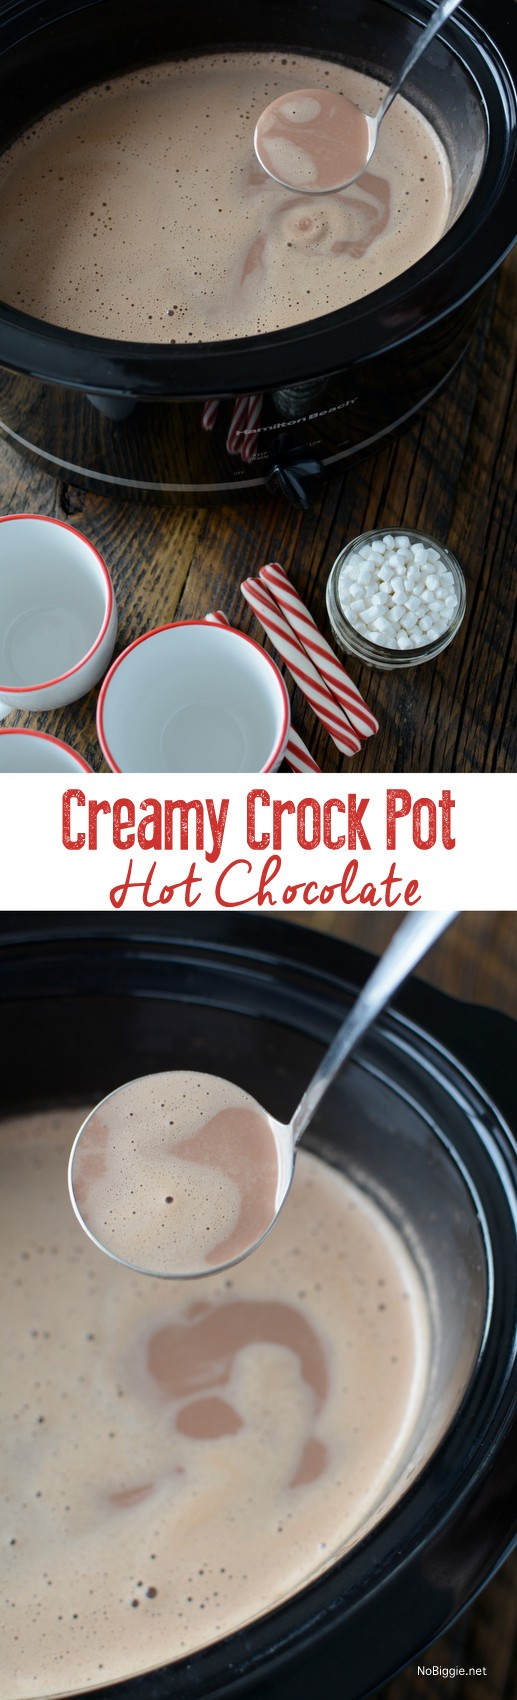 Creamy Crockpot Hot Chocolate - NoBiggie